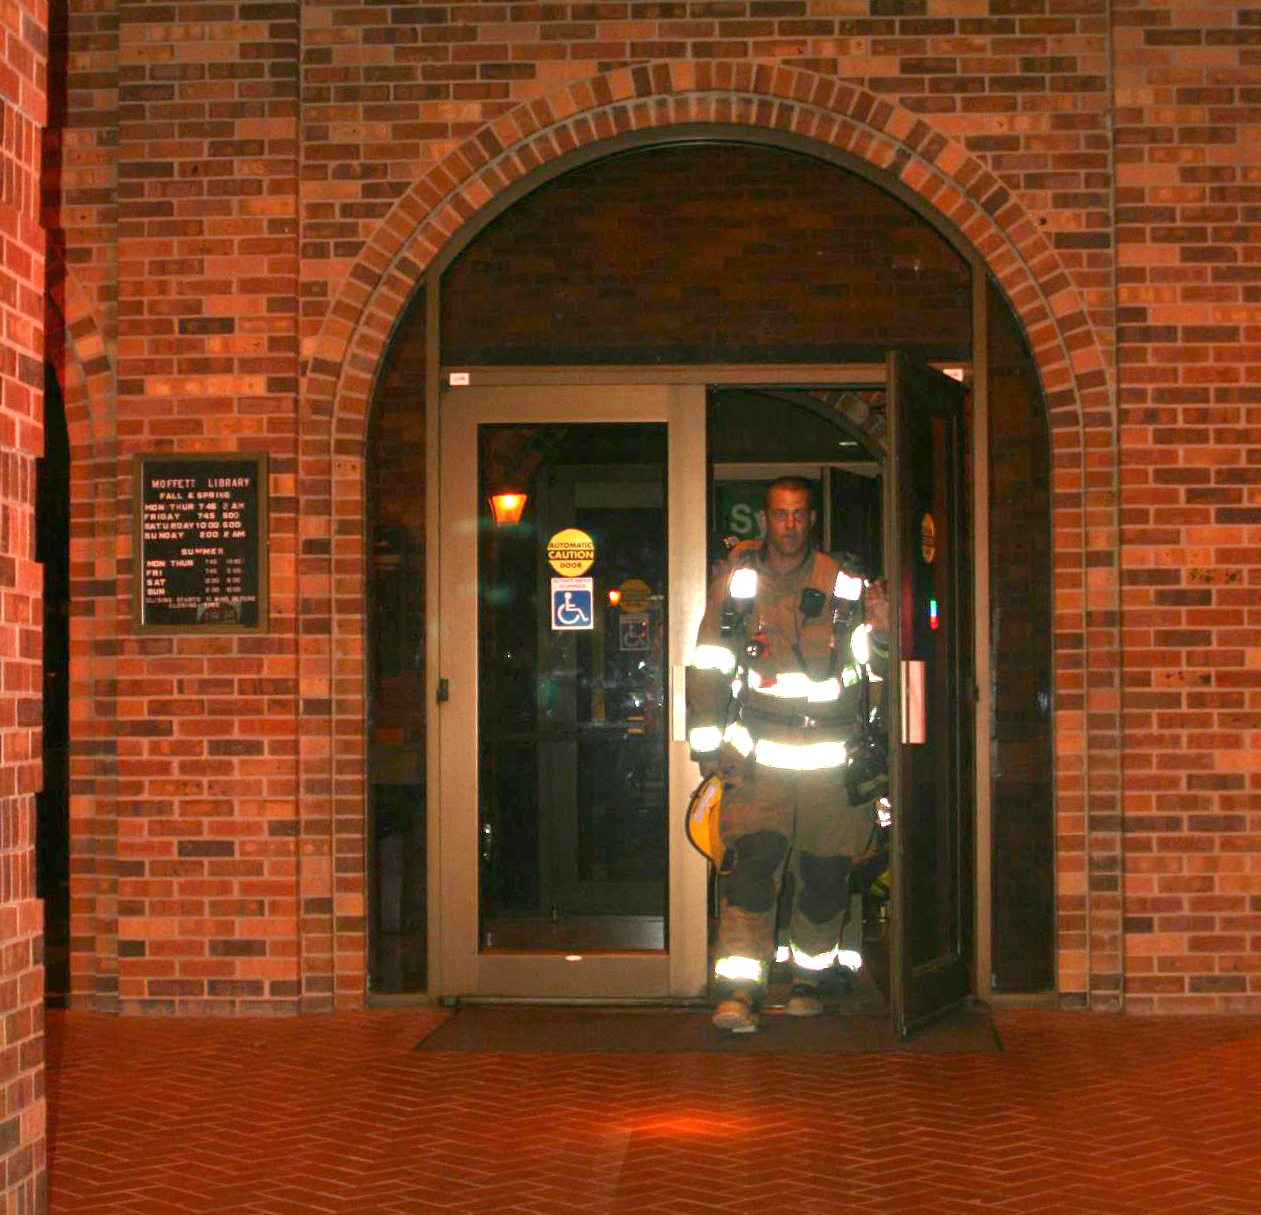 Smoke in Moffett library raises commotion